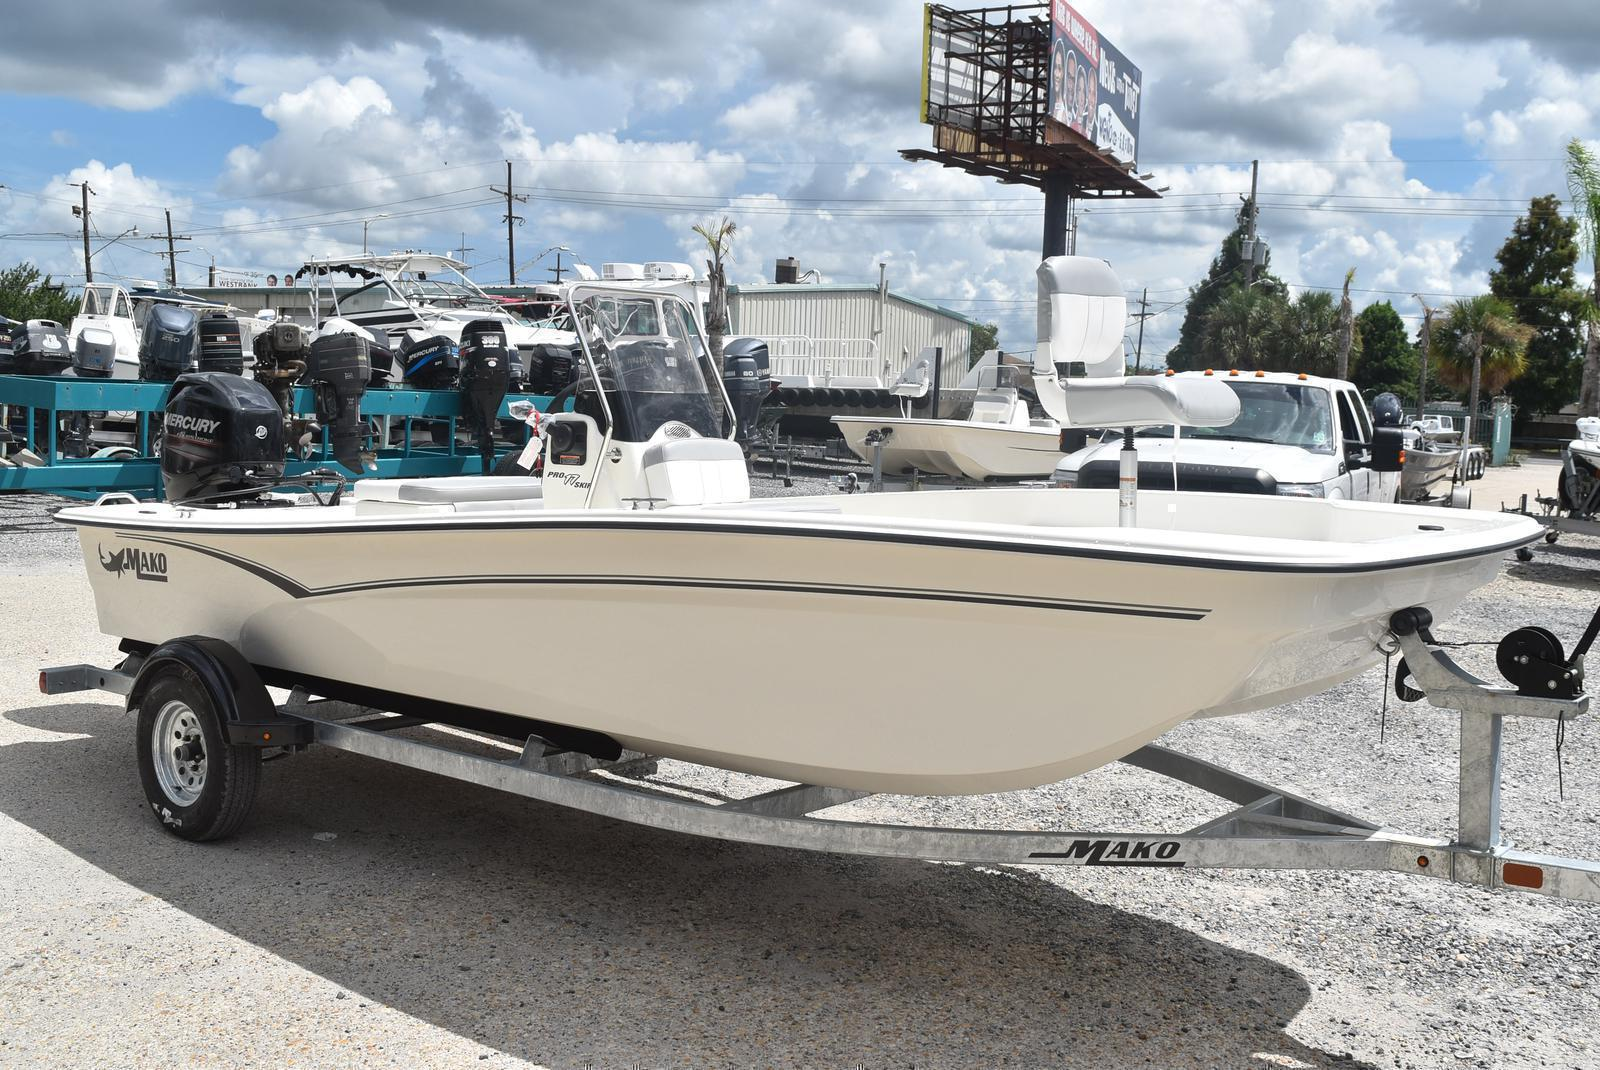 2020 Mako boat for sale, model of the boat is Pro Skiff 17, 75 ELPT & Image # 647 of 702